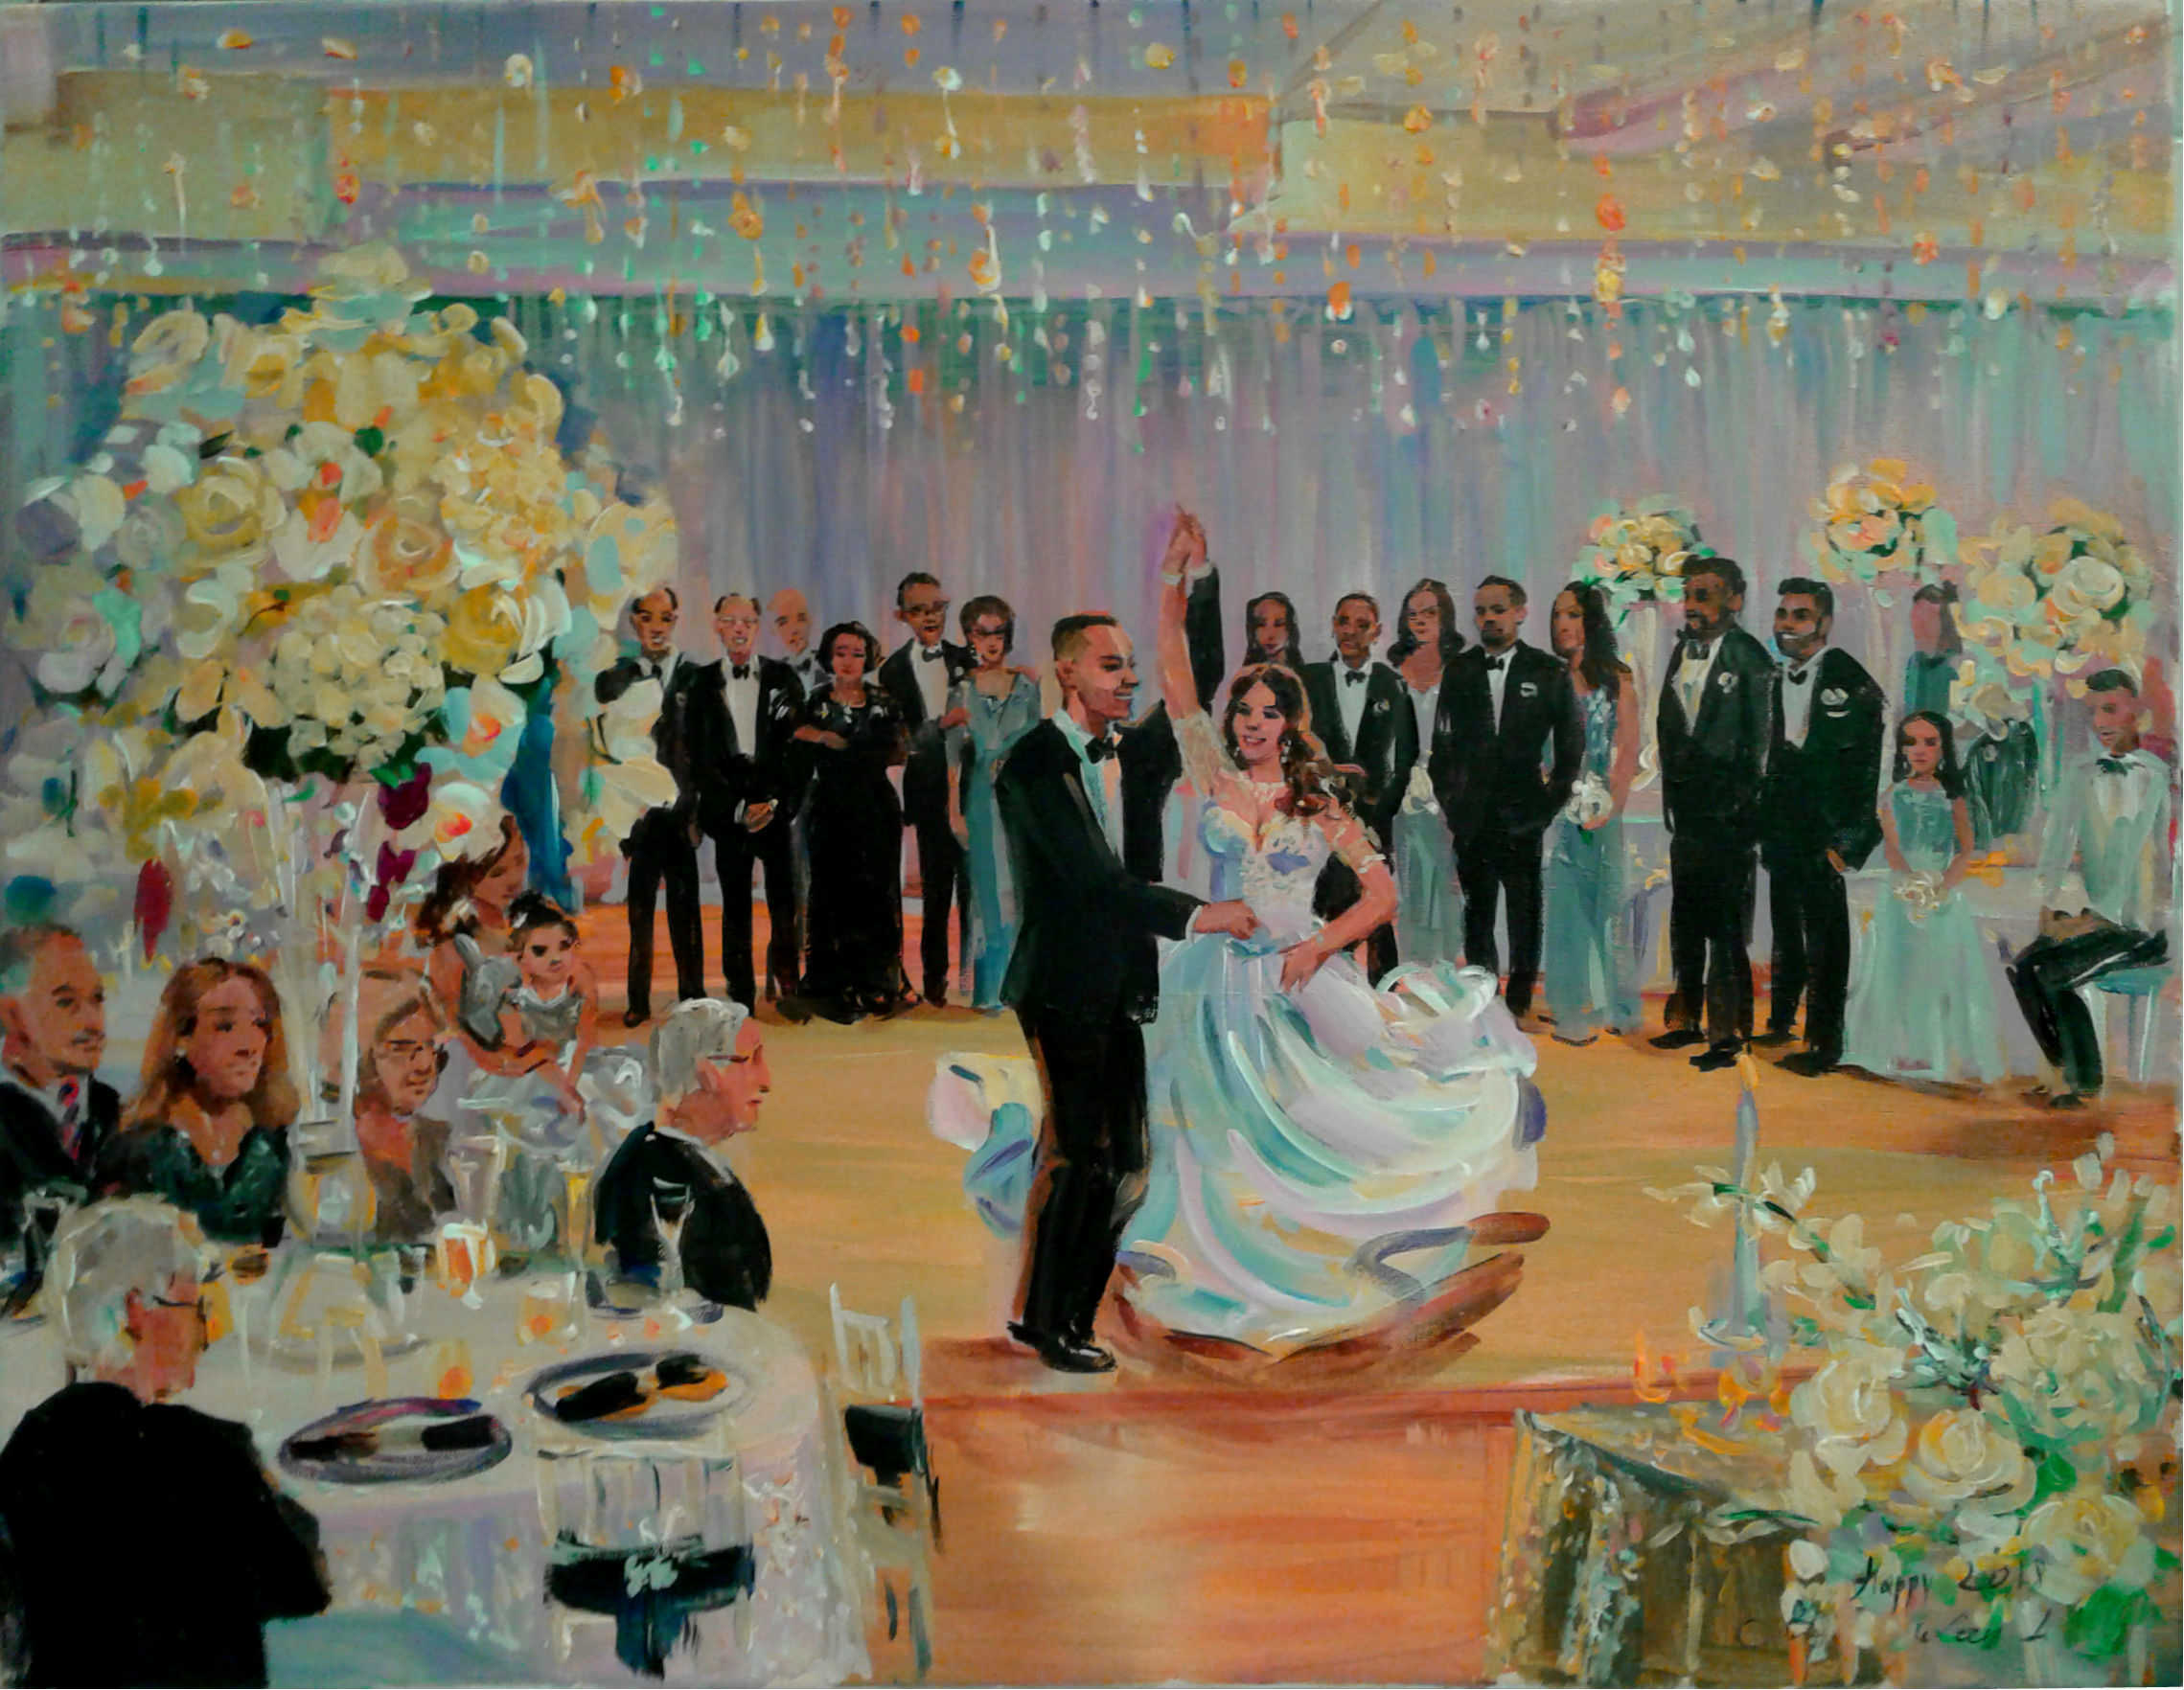 new year wedding painting xsmall